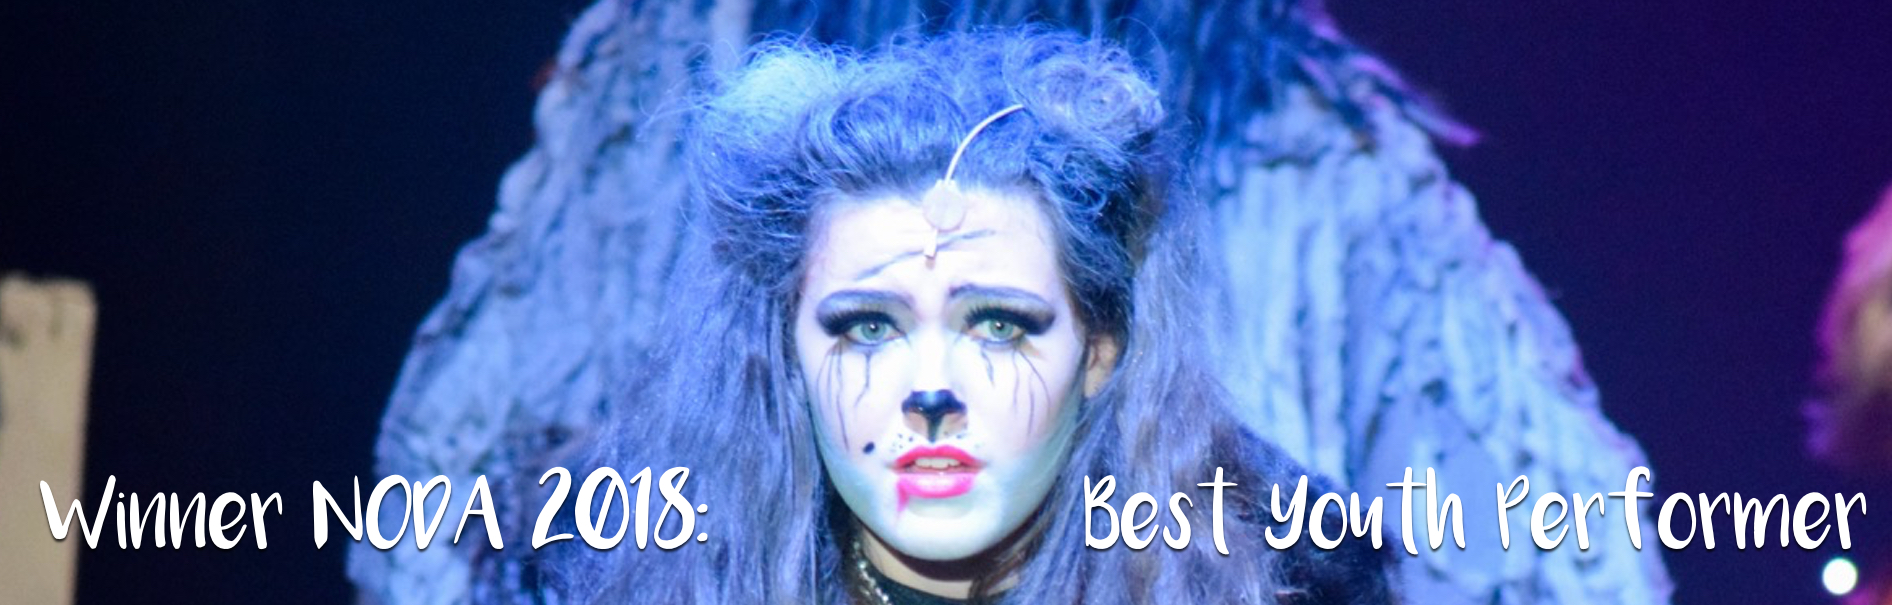 WOW NODA Winner - Cerys Wilkin, Grizabella in CATS